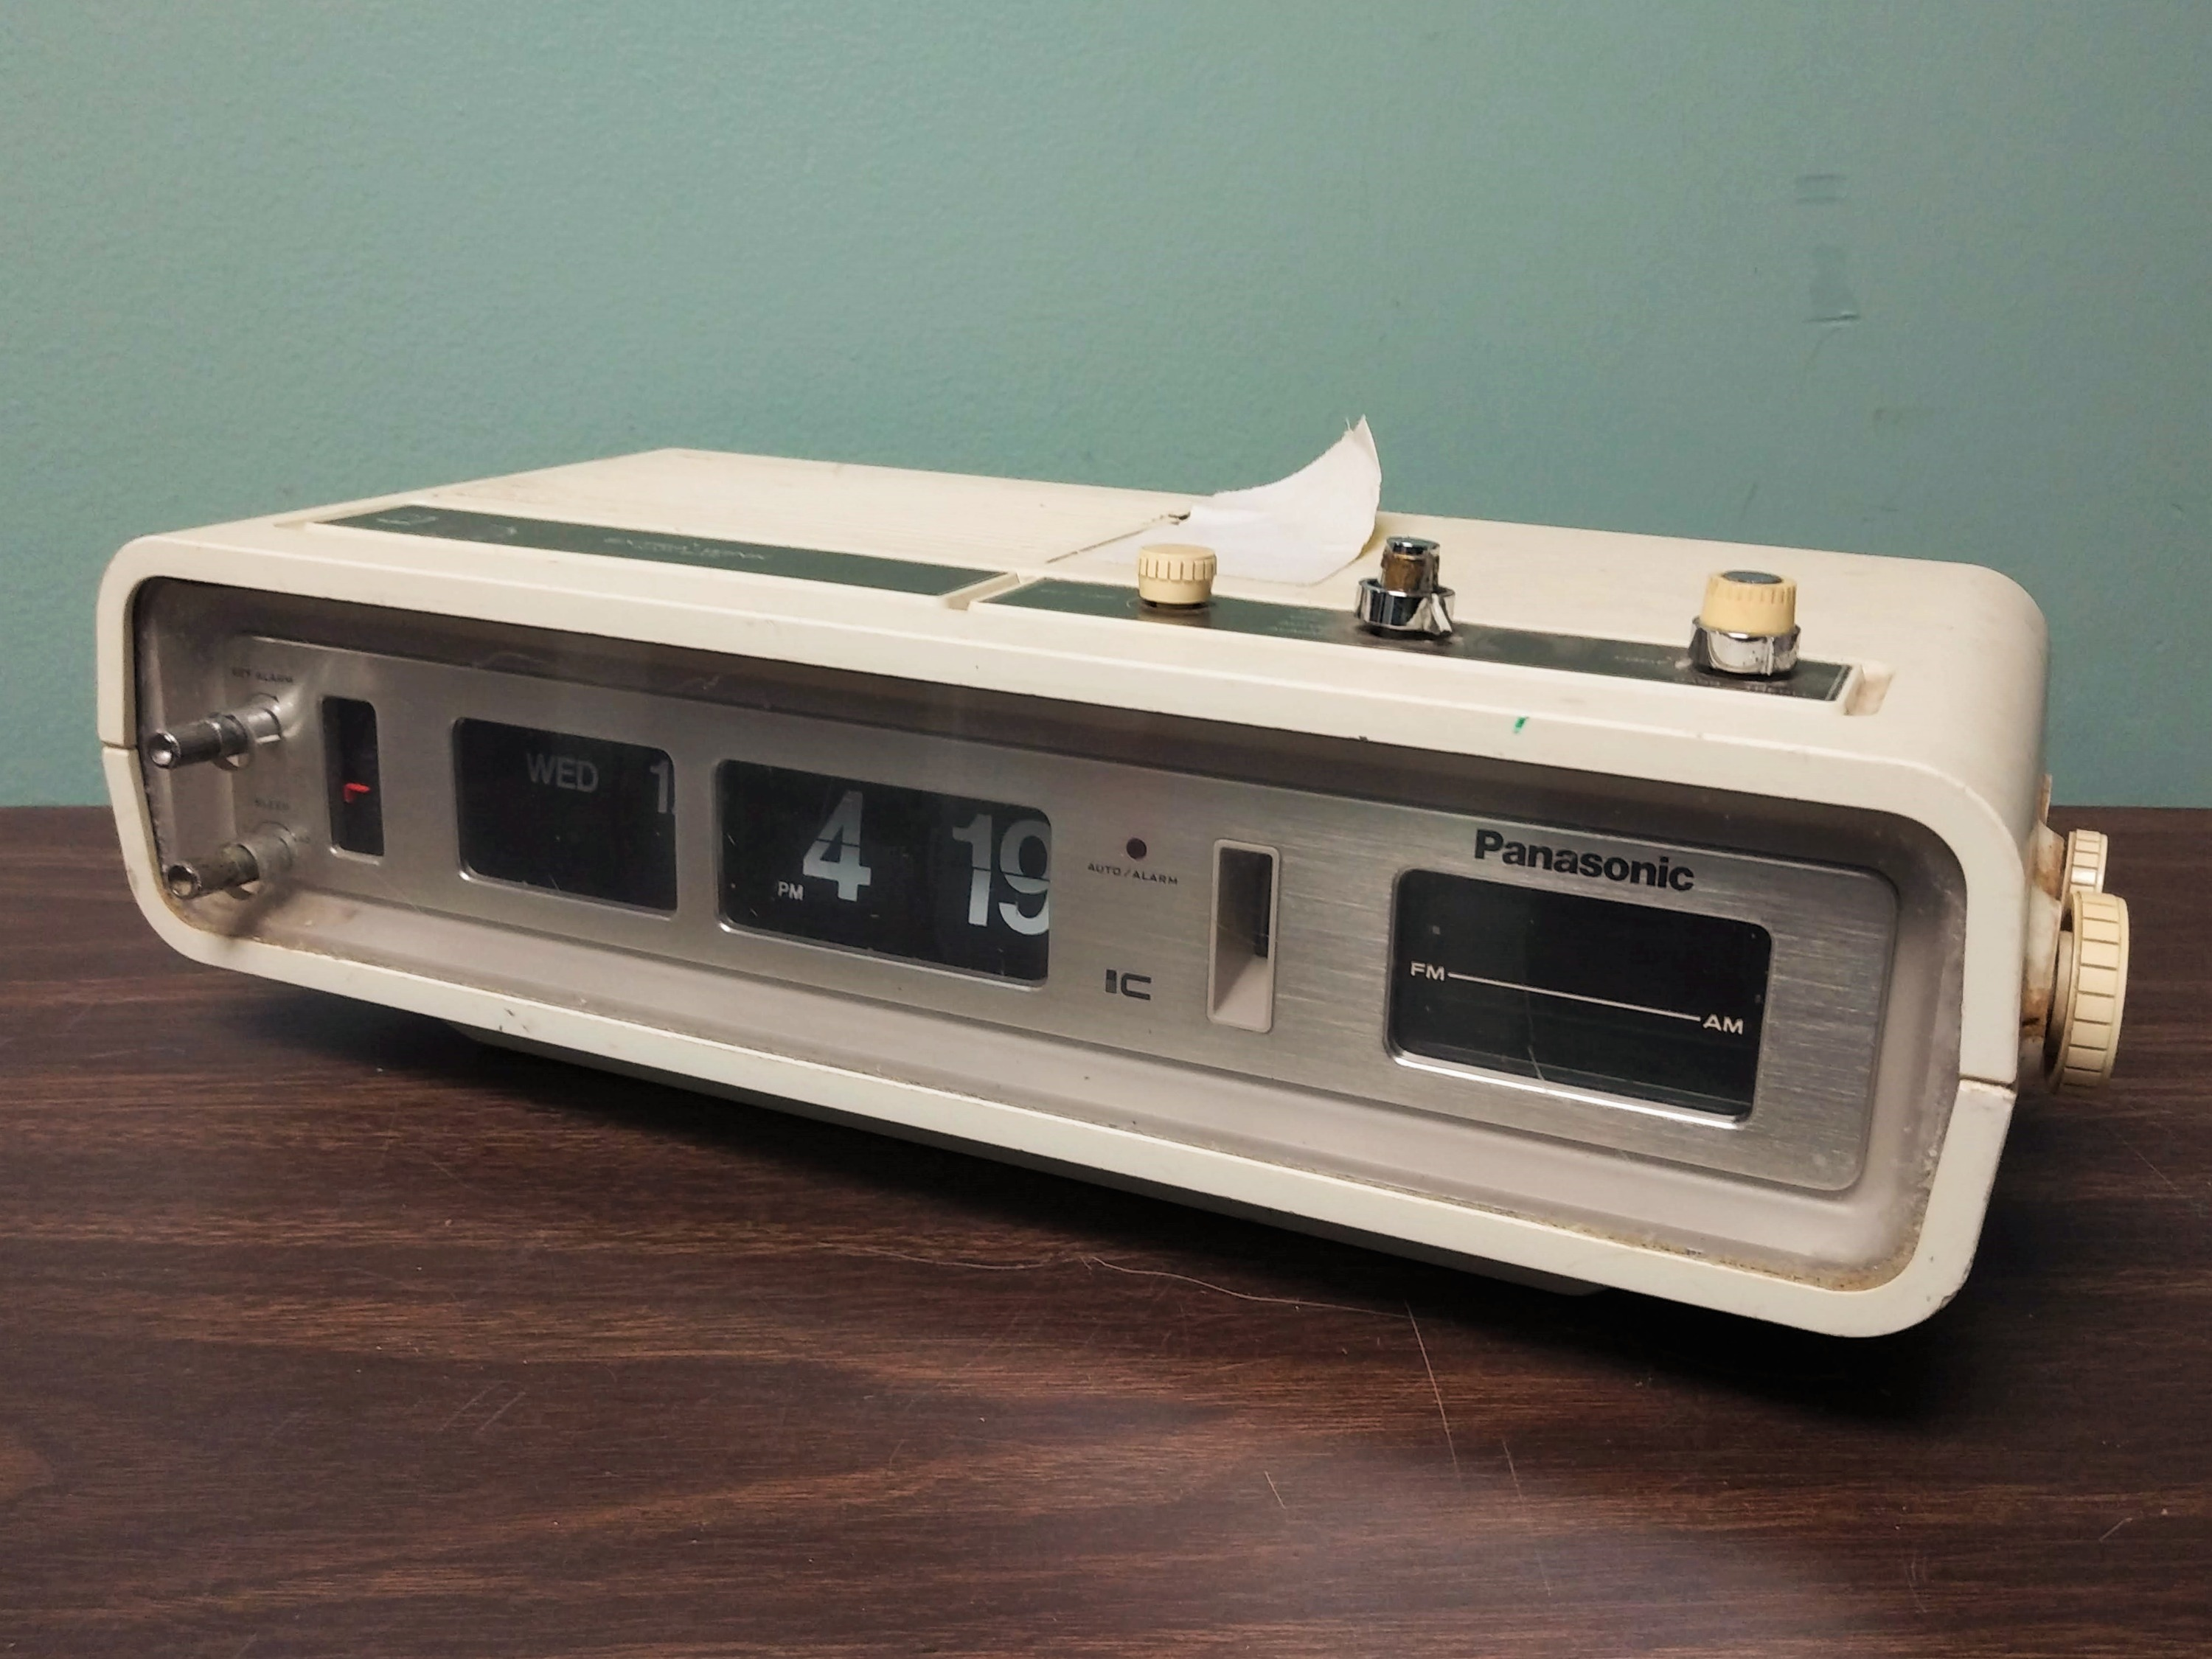 Panasonic Flip Clock Radio 1970s